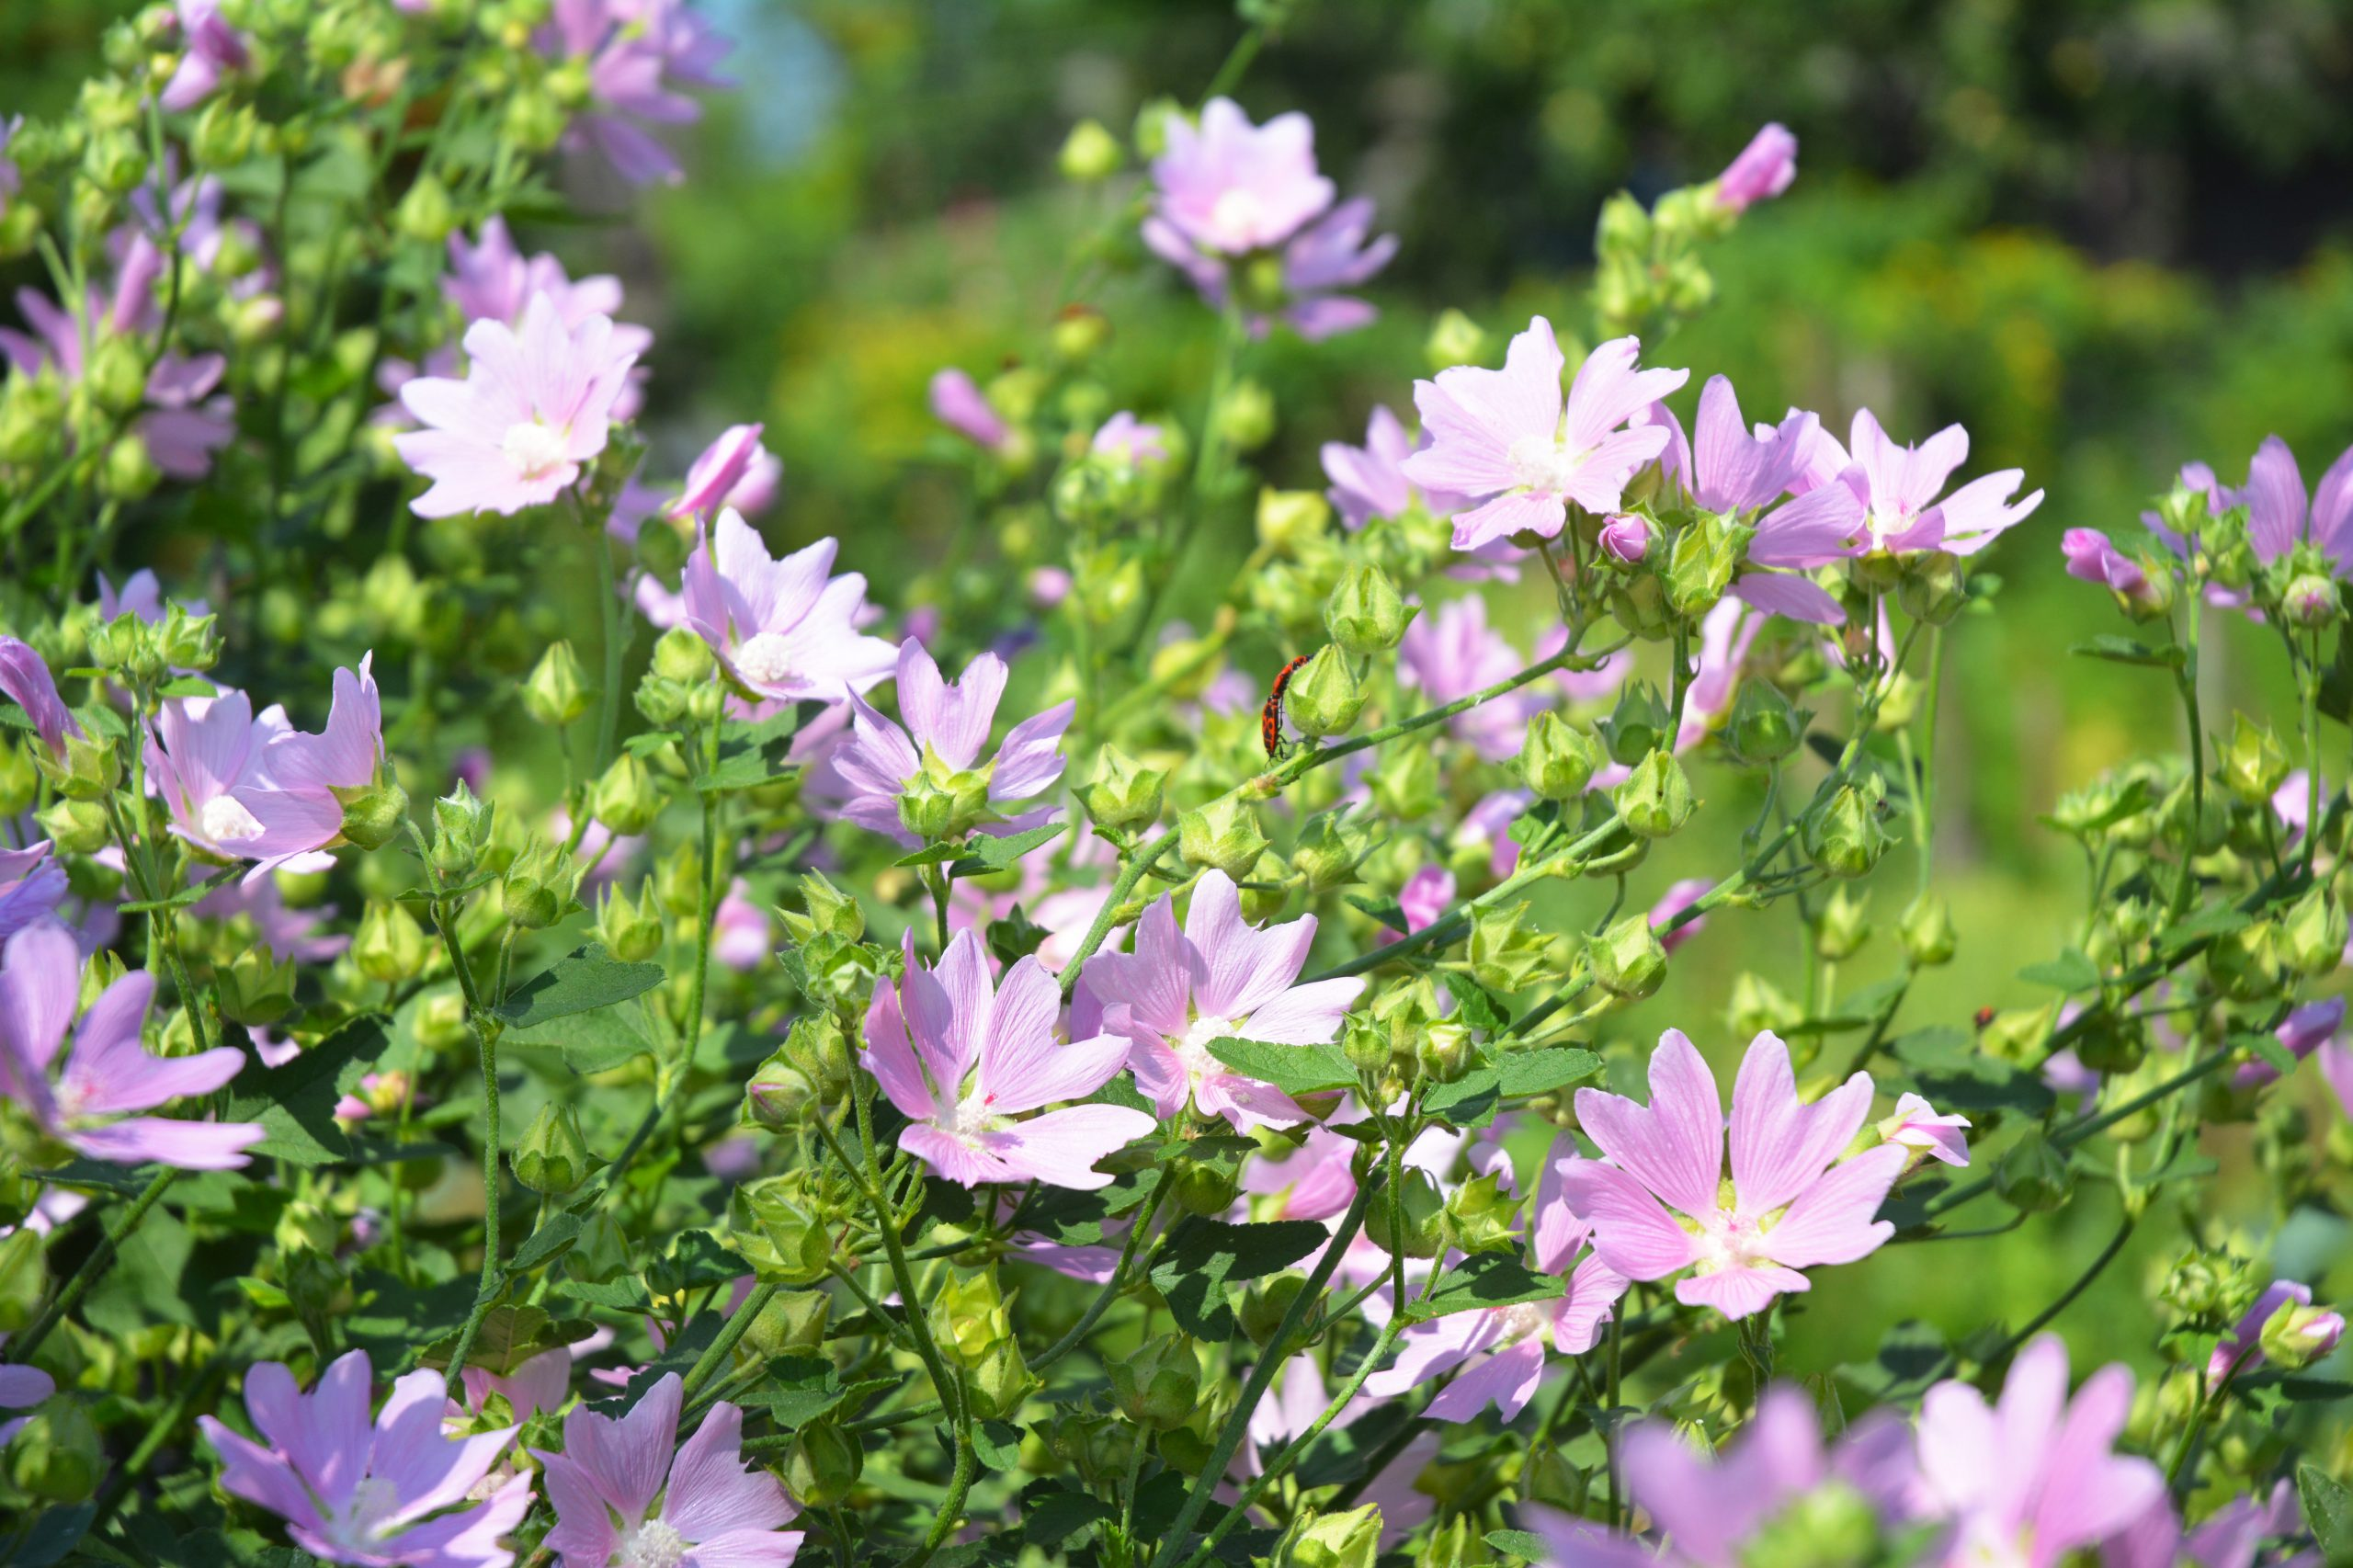 Althaea officinalis or marsh mallow flowers. Marshmallow is used as a medicinal plant and ornamental plant.